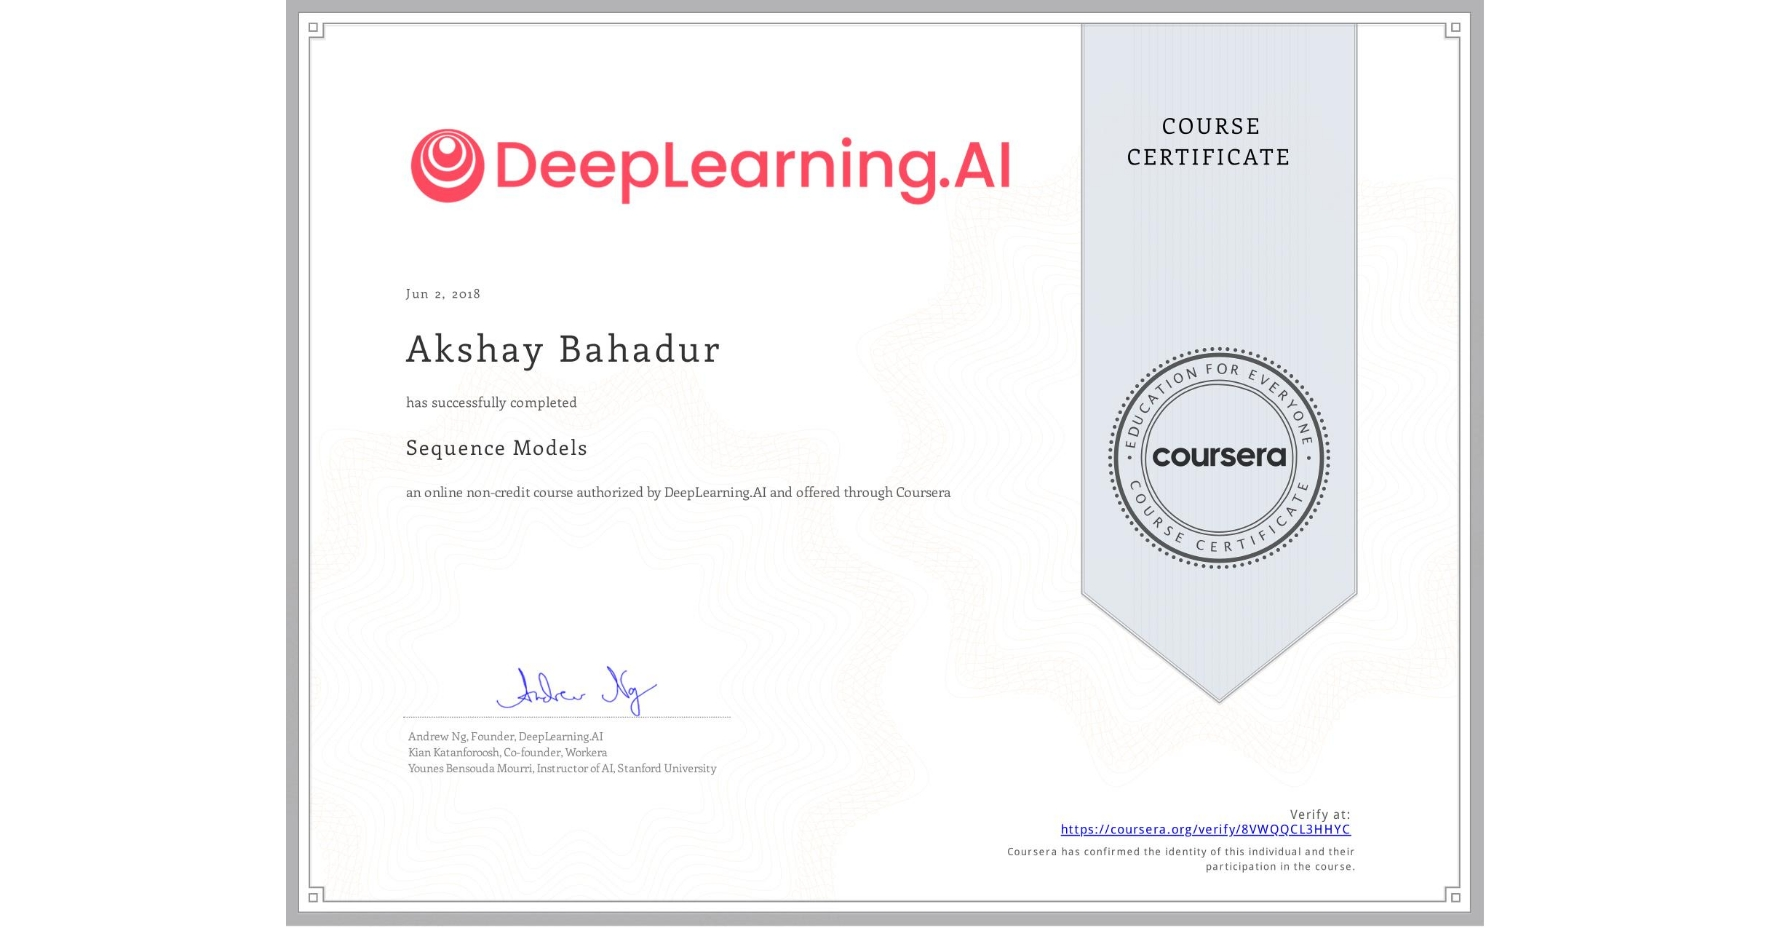 View certificate for Akshay Bahadur, Sequence Models, an online non-credit course authorized by DeepLearning.AI and offered through Coursera